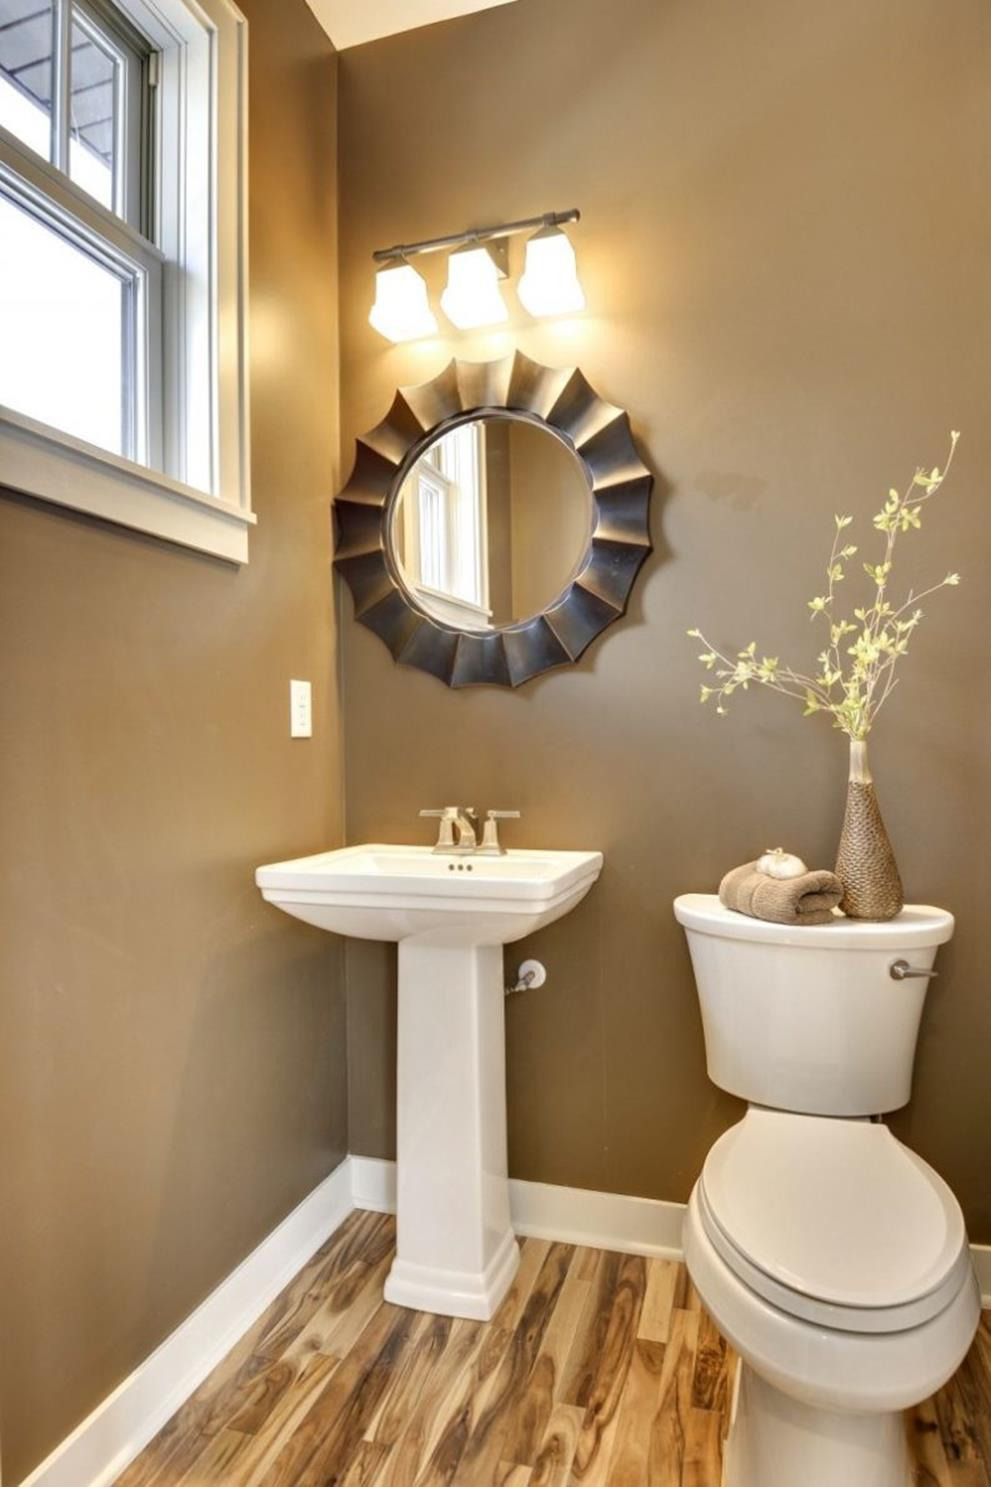 Decorating Ideas for Bathrooms On A Budget Elegant 32 Perfect Apartment Bathroom Decorating Ideas A Bud